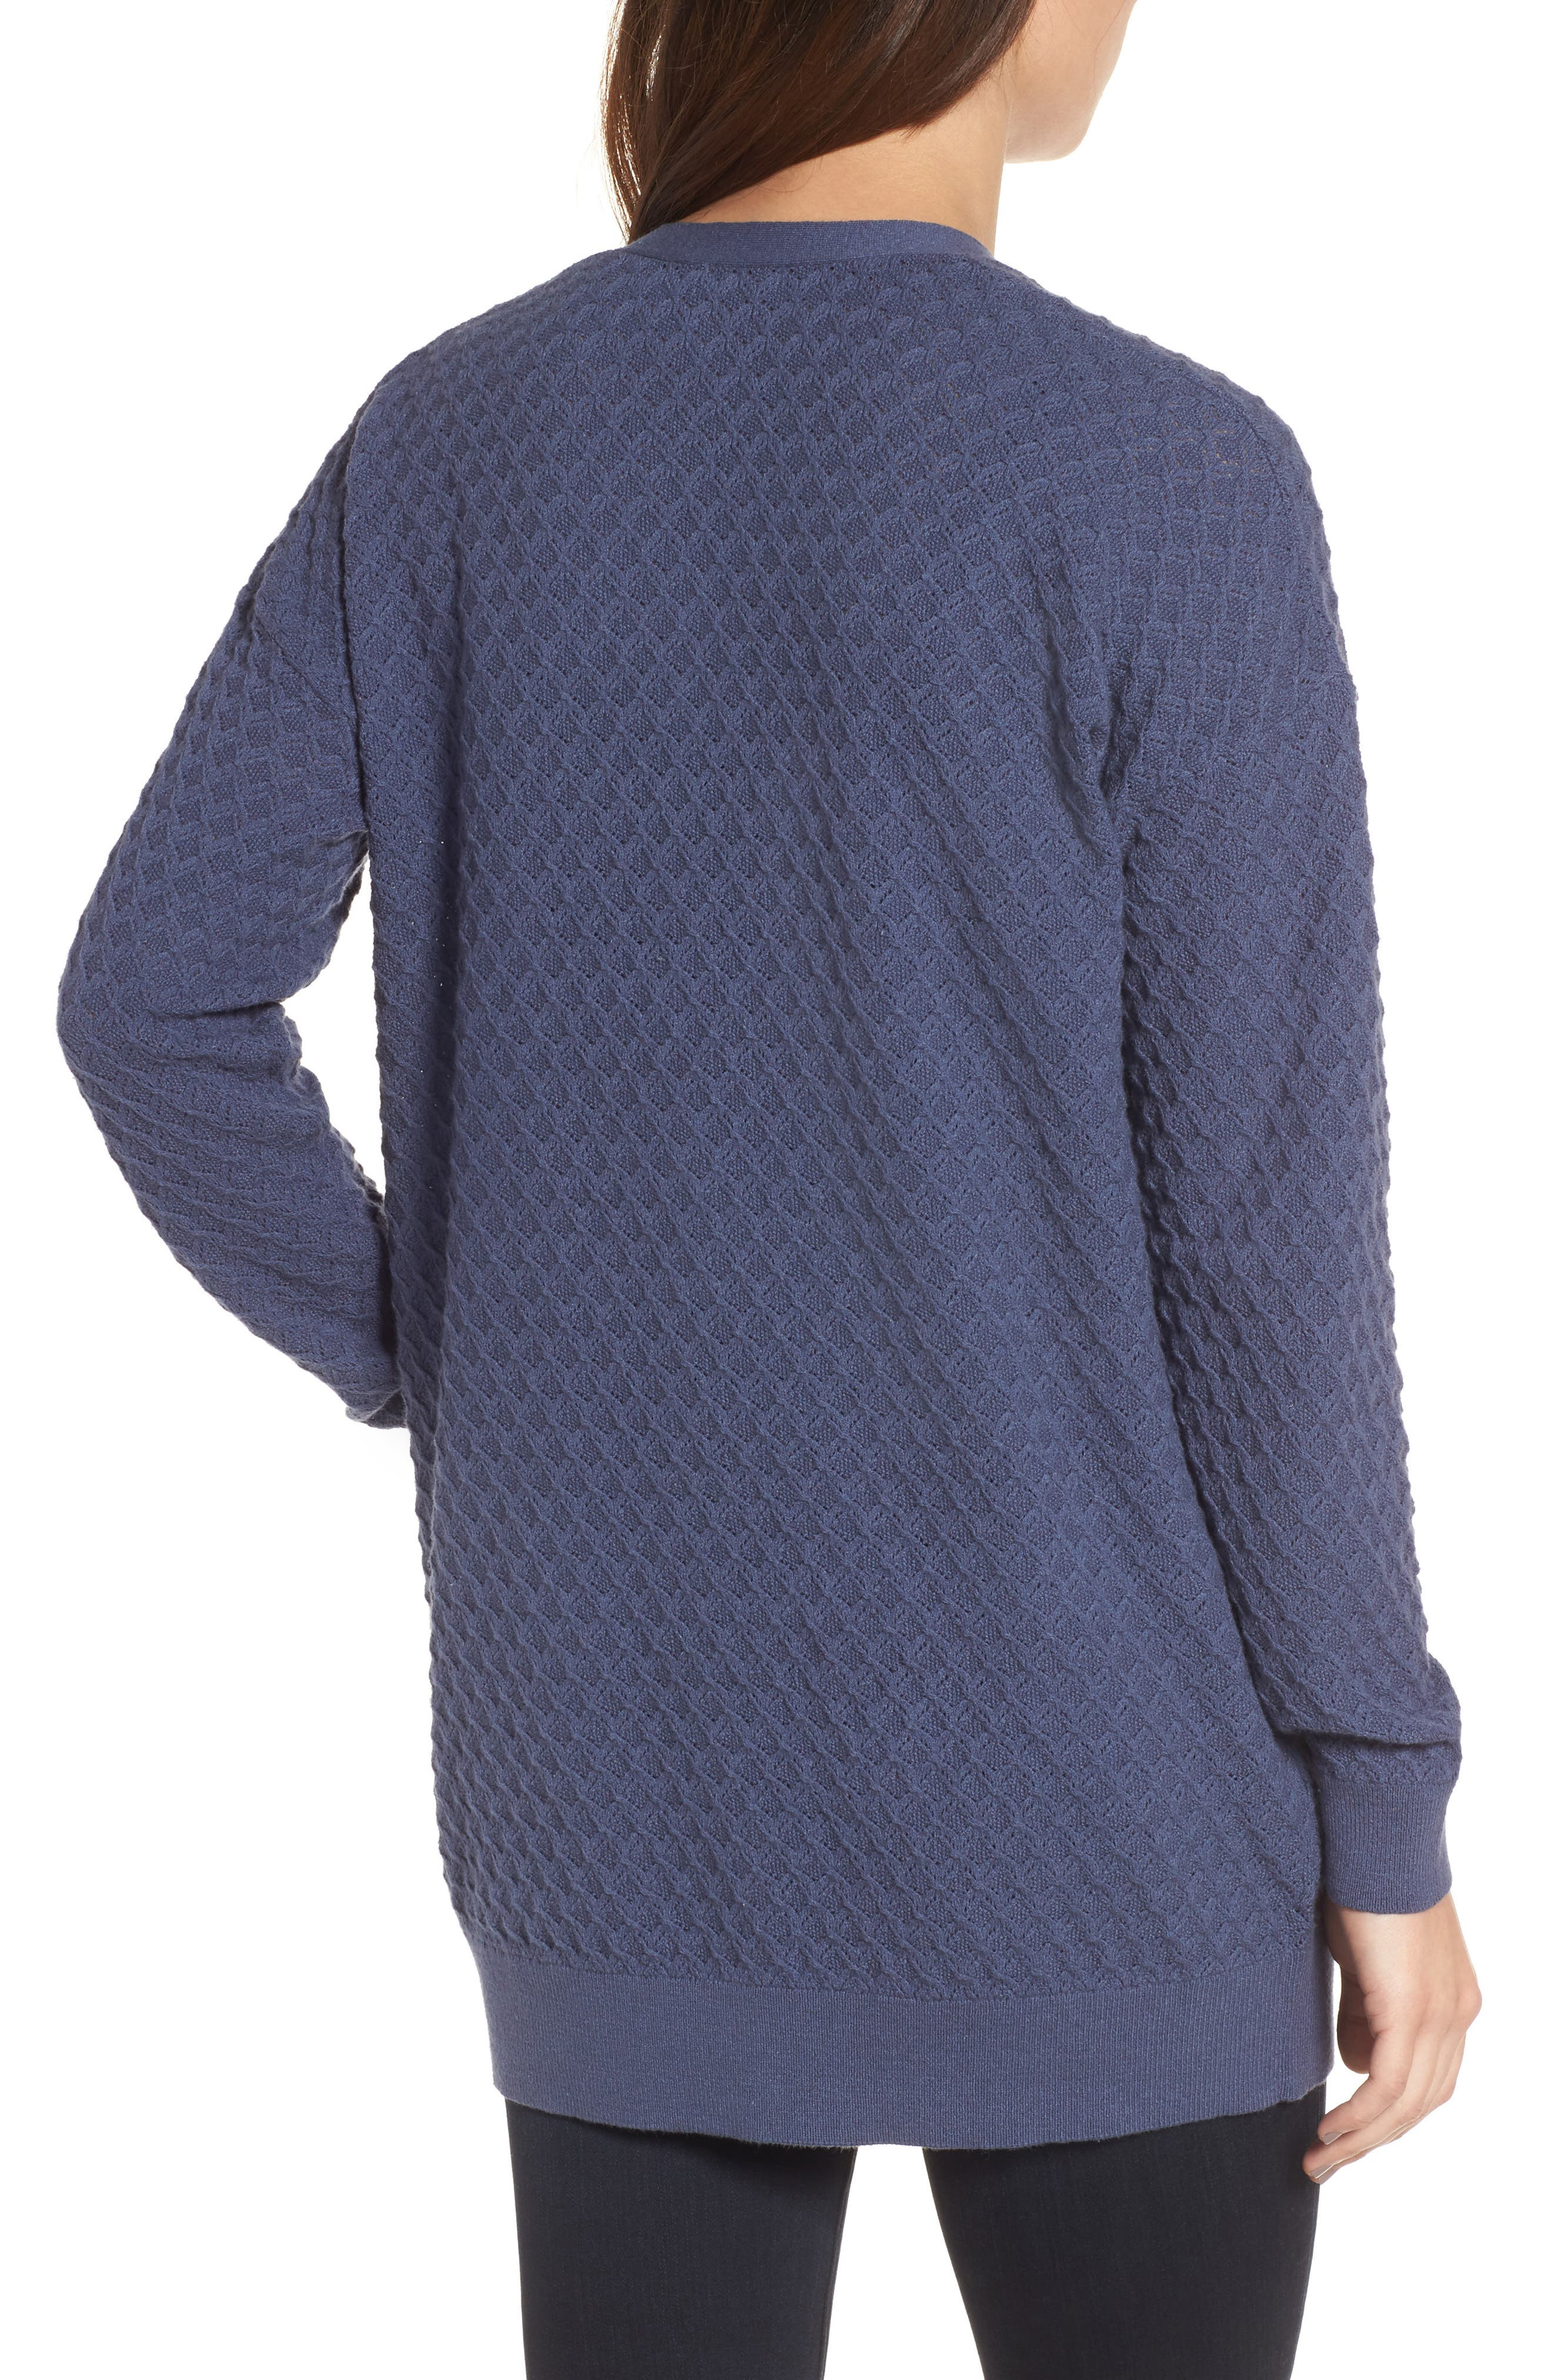 Pointelle Cardigan Sweater,                             Alternate thumbnail 7, color,